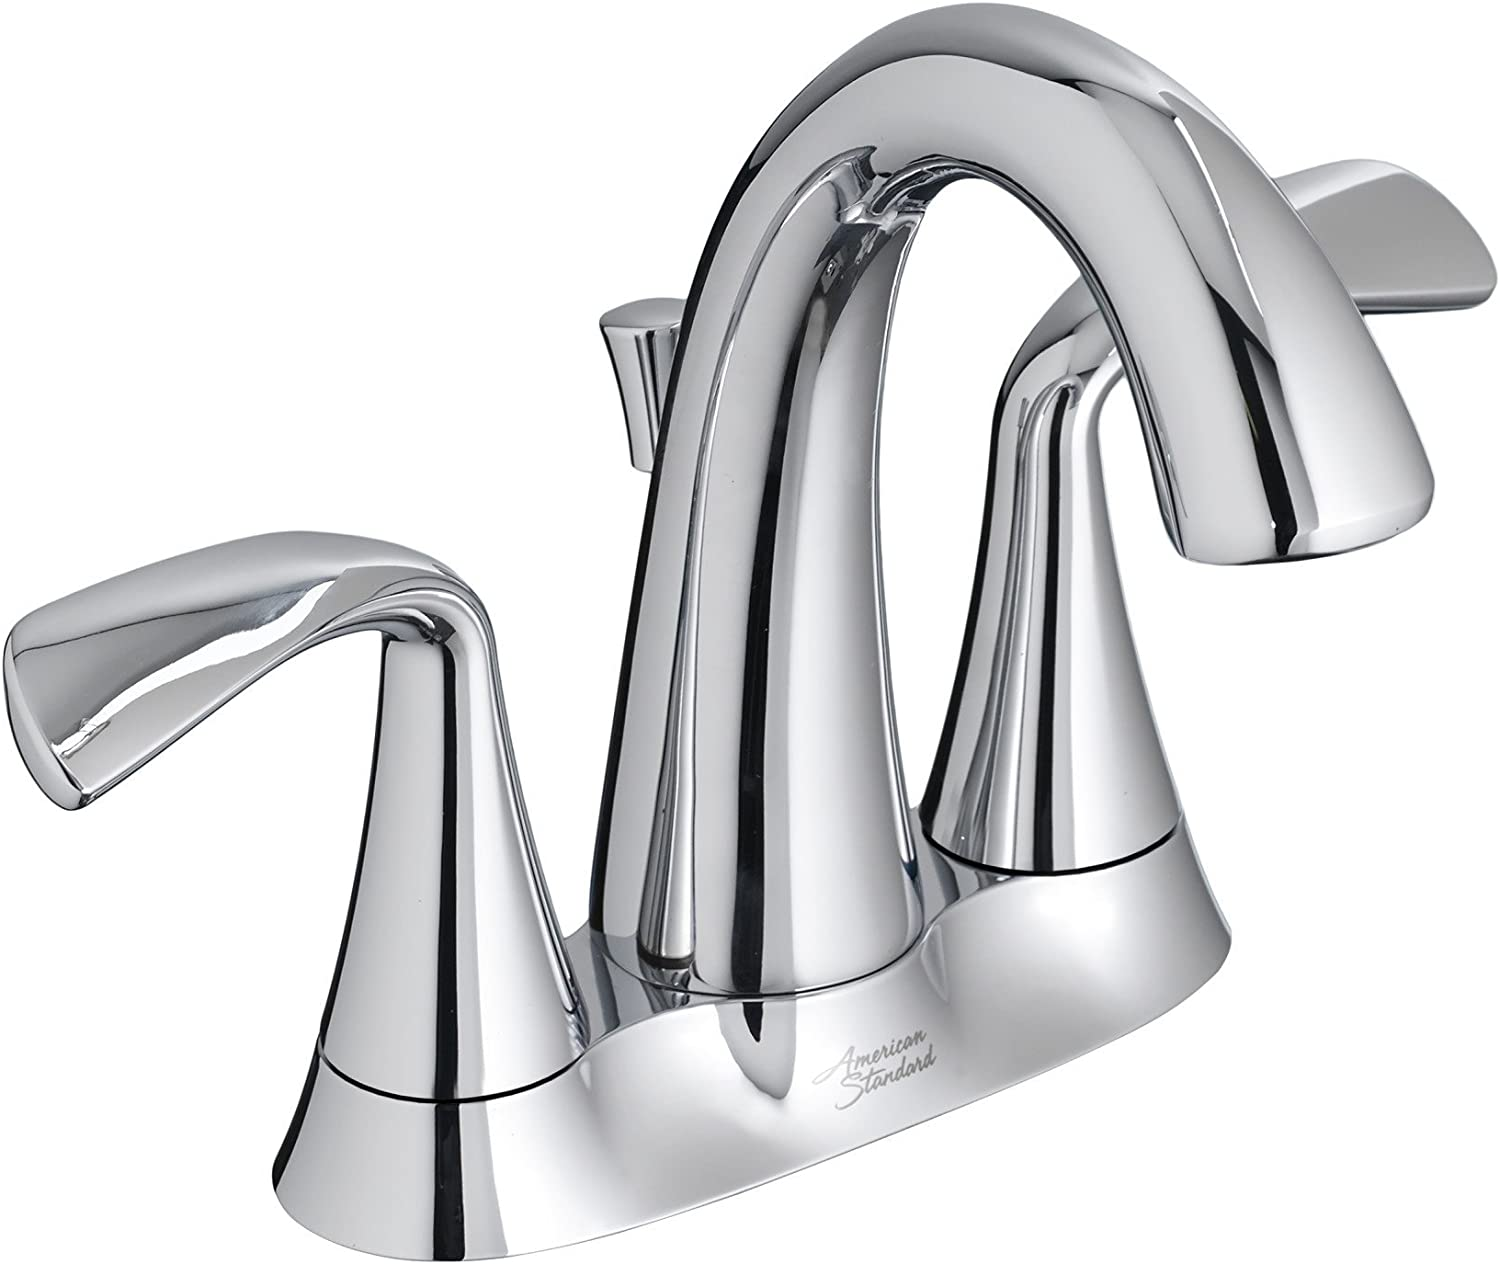 "American Standard 7186203.002 Fluent 4"" Centerset Bathroom Faucet with Speed Connect Drain, Polished Chrome"